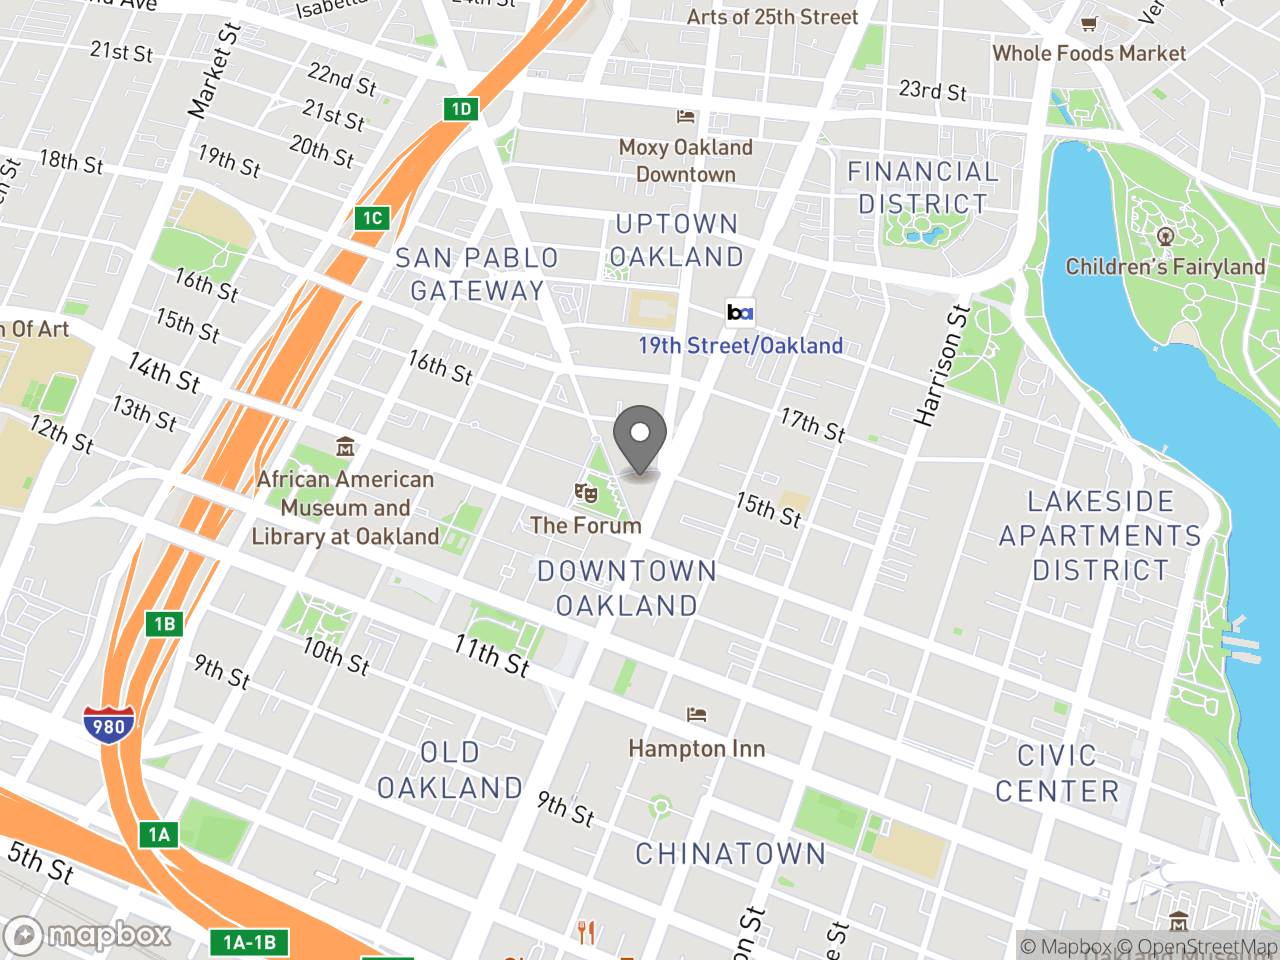 Map location for Alameda County-Oakland Community Action Partnership (AC-OCAP) Executive Committee Meeting March 7, 2018, located at 150 Frank H Ogawa Plaza in Oakland, CA 94612